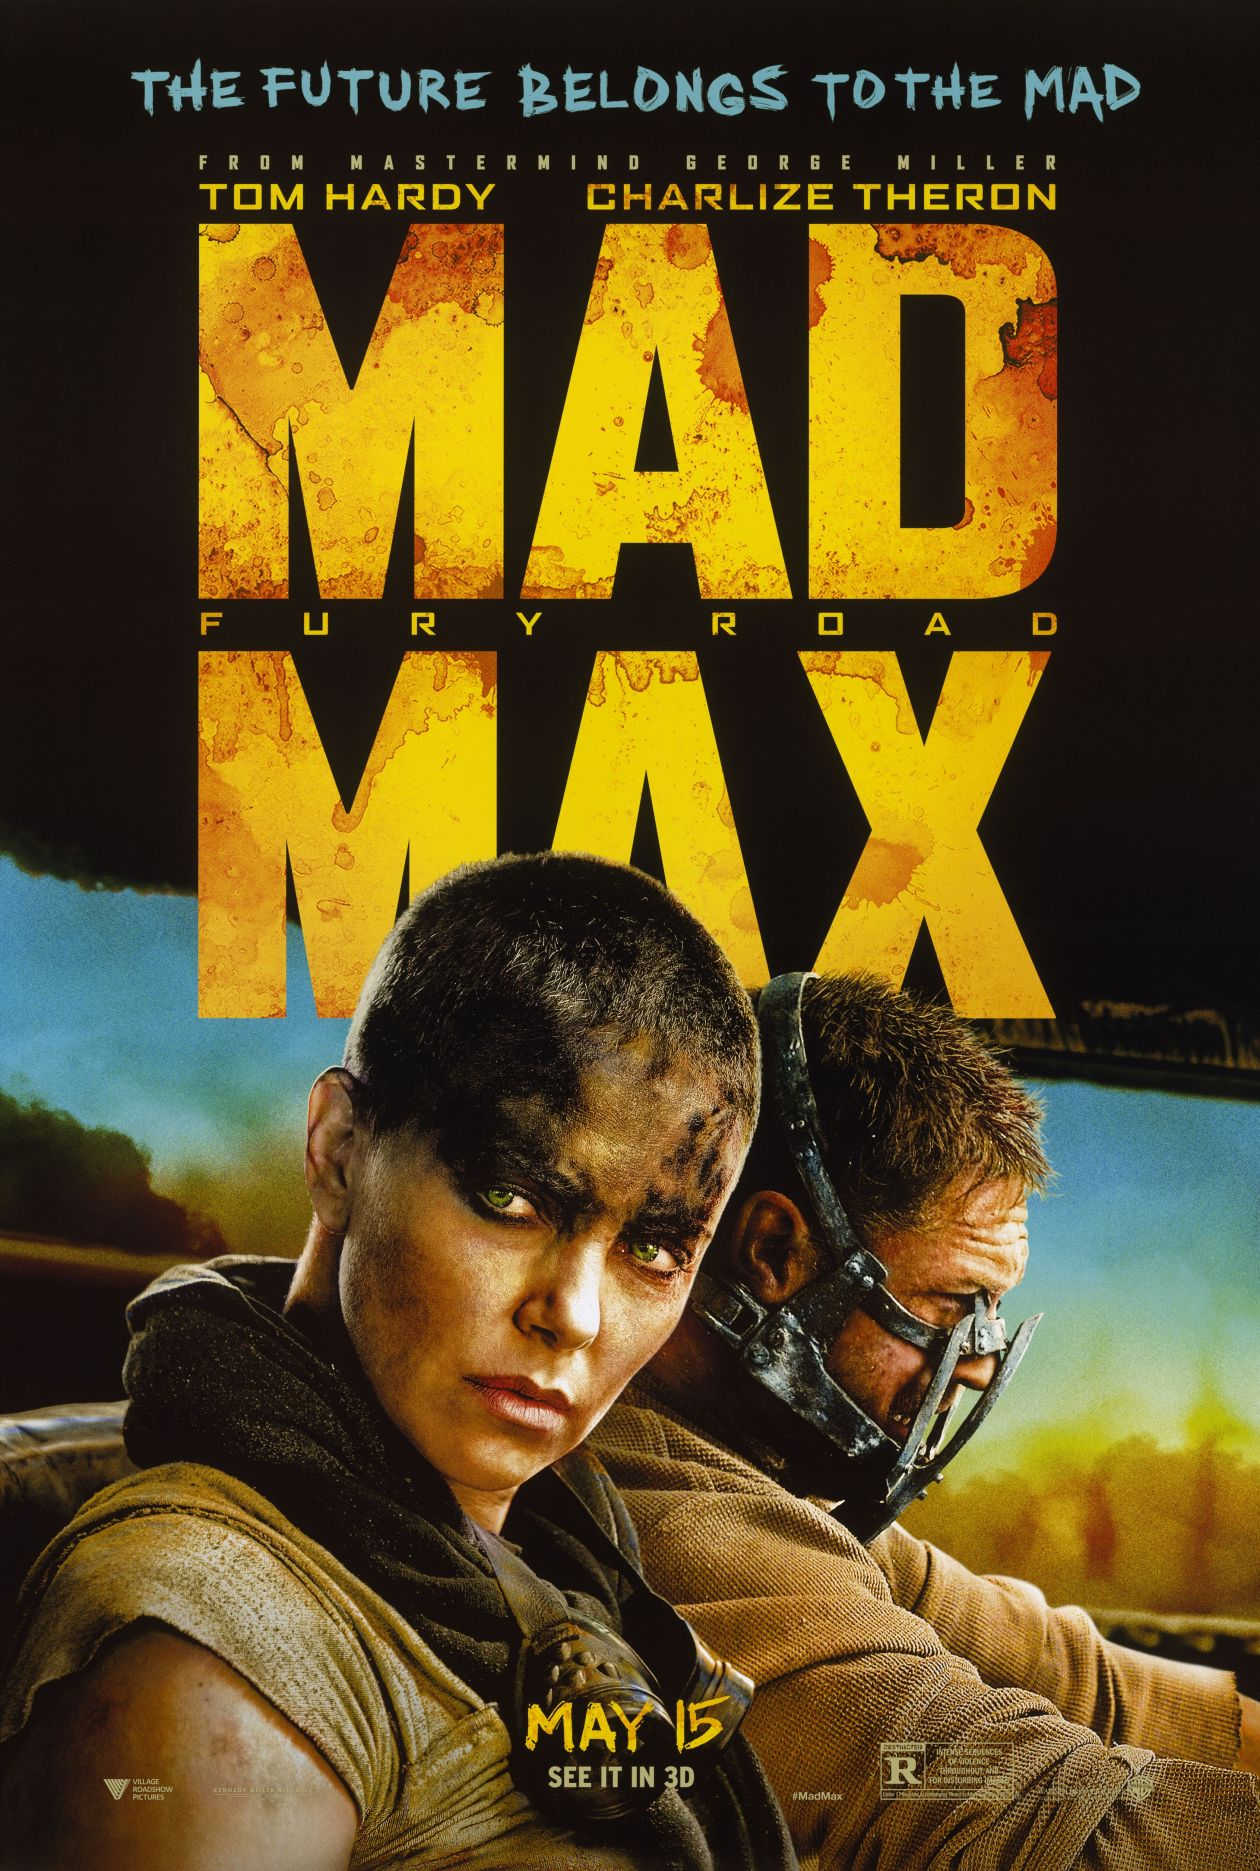 Charlize Theron actress | Mad Max: Fury Road / Georges Miller 2015 Movie Poster Affiche film